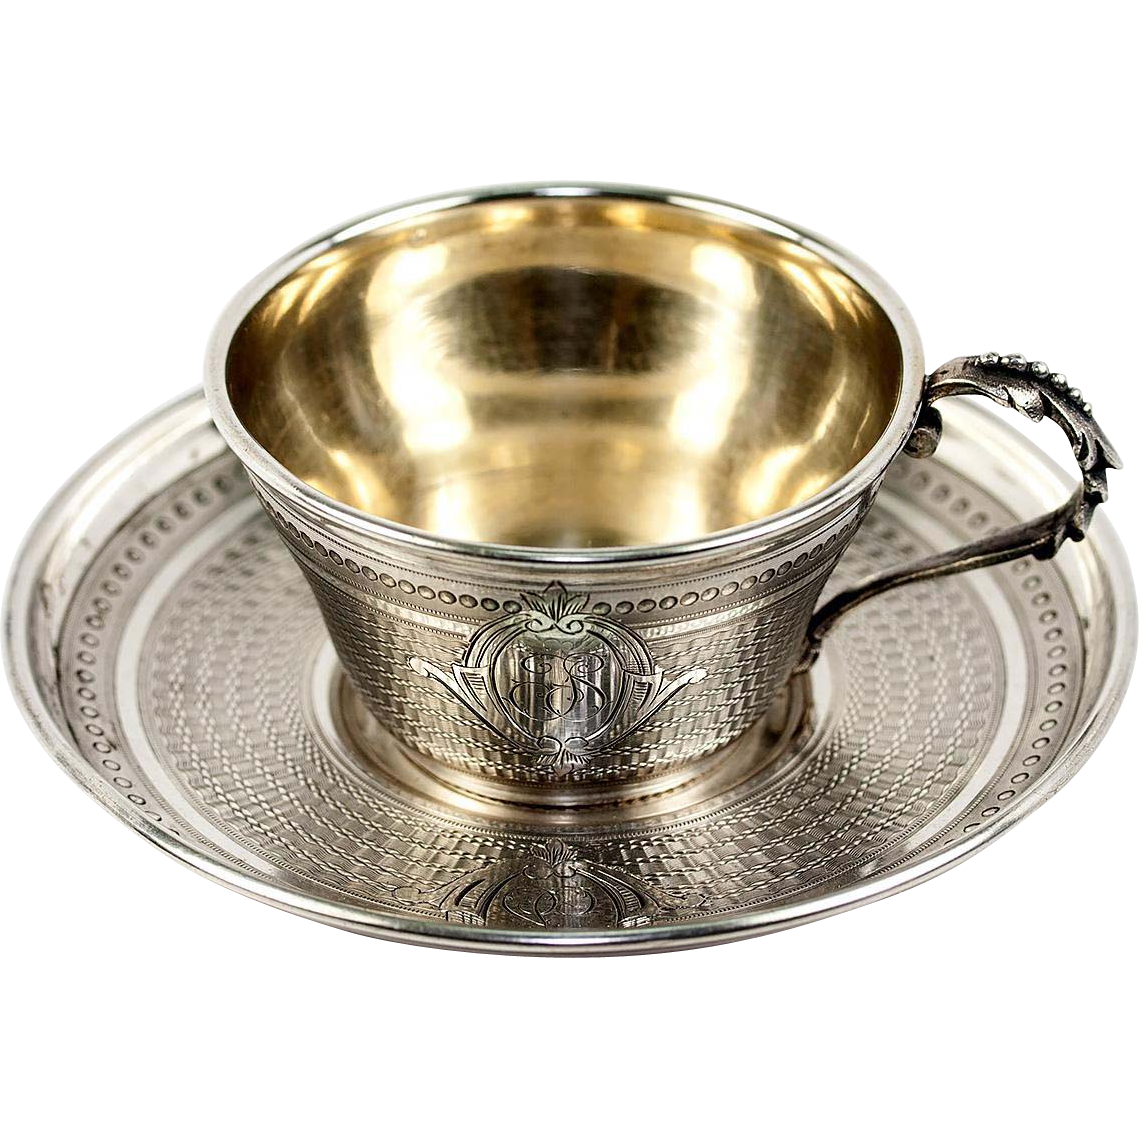 Antique French Sterling Silver Demitasse Coffee Or Tea Cup Saucer  ~ Tazas Para Infusiones El Corte Ingles